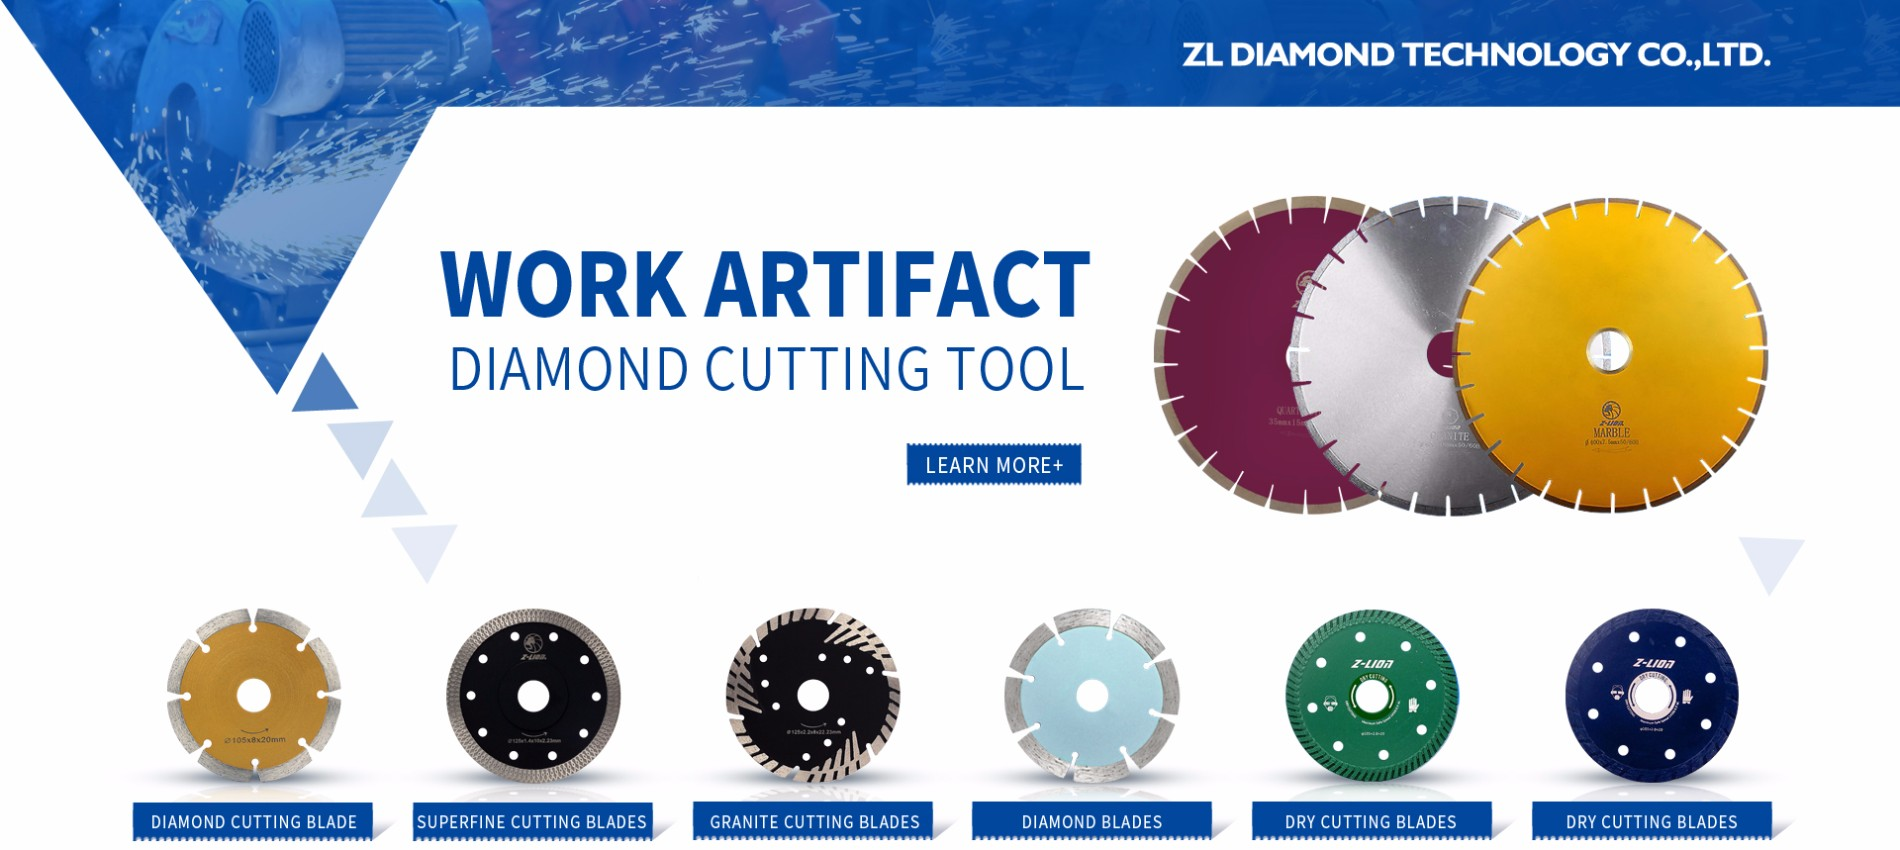 Diamond Cutting Tools